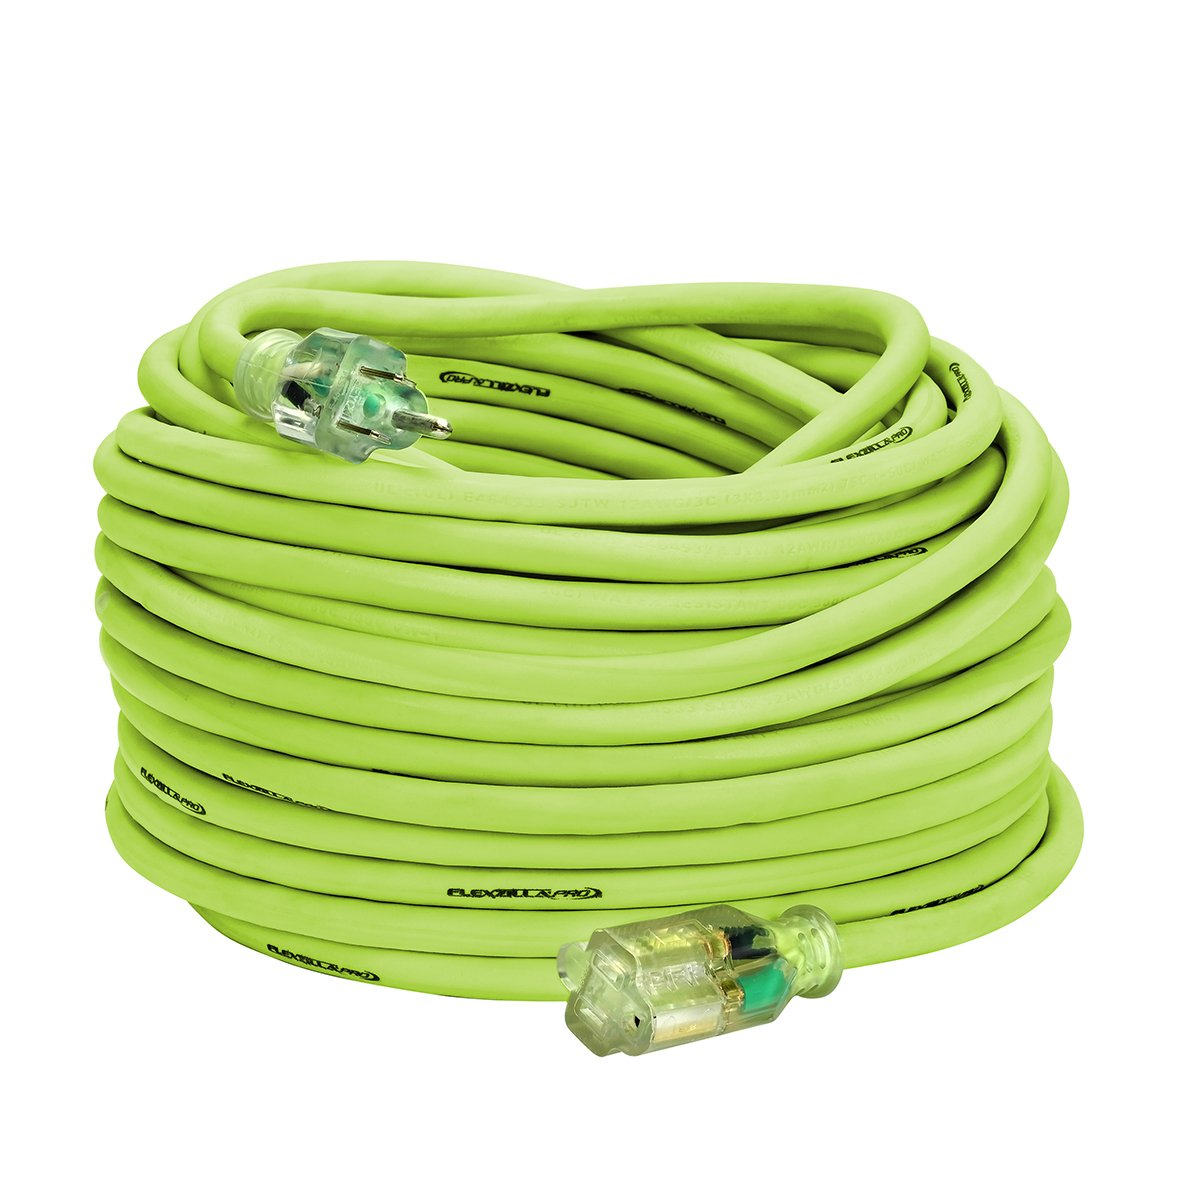 Flexzilla Pro Extension Cord, 12/3 AWG SJTW, 50', Lighted Plug, Indoor/Outdoor, ZillaGreen-721-123050FZL5F 50' Legacy Manufacturing